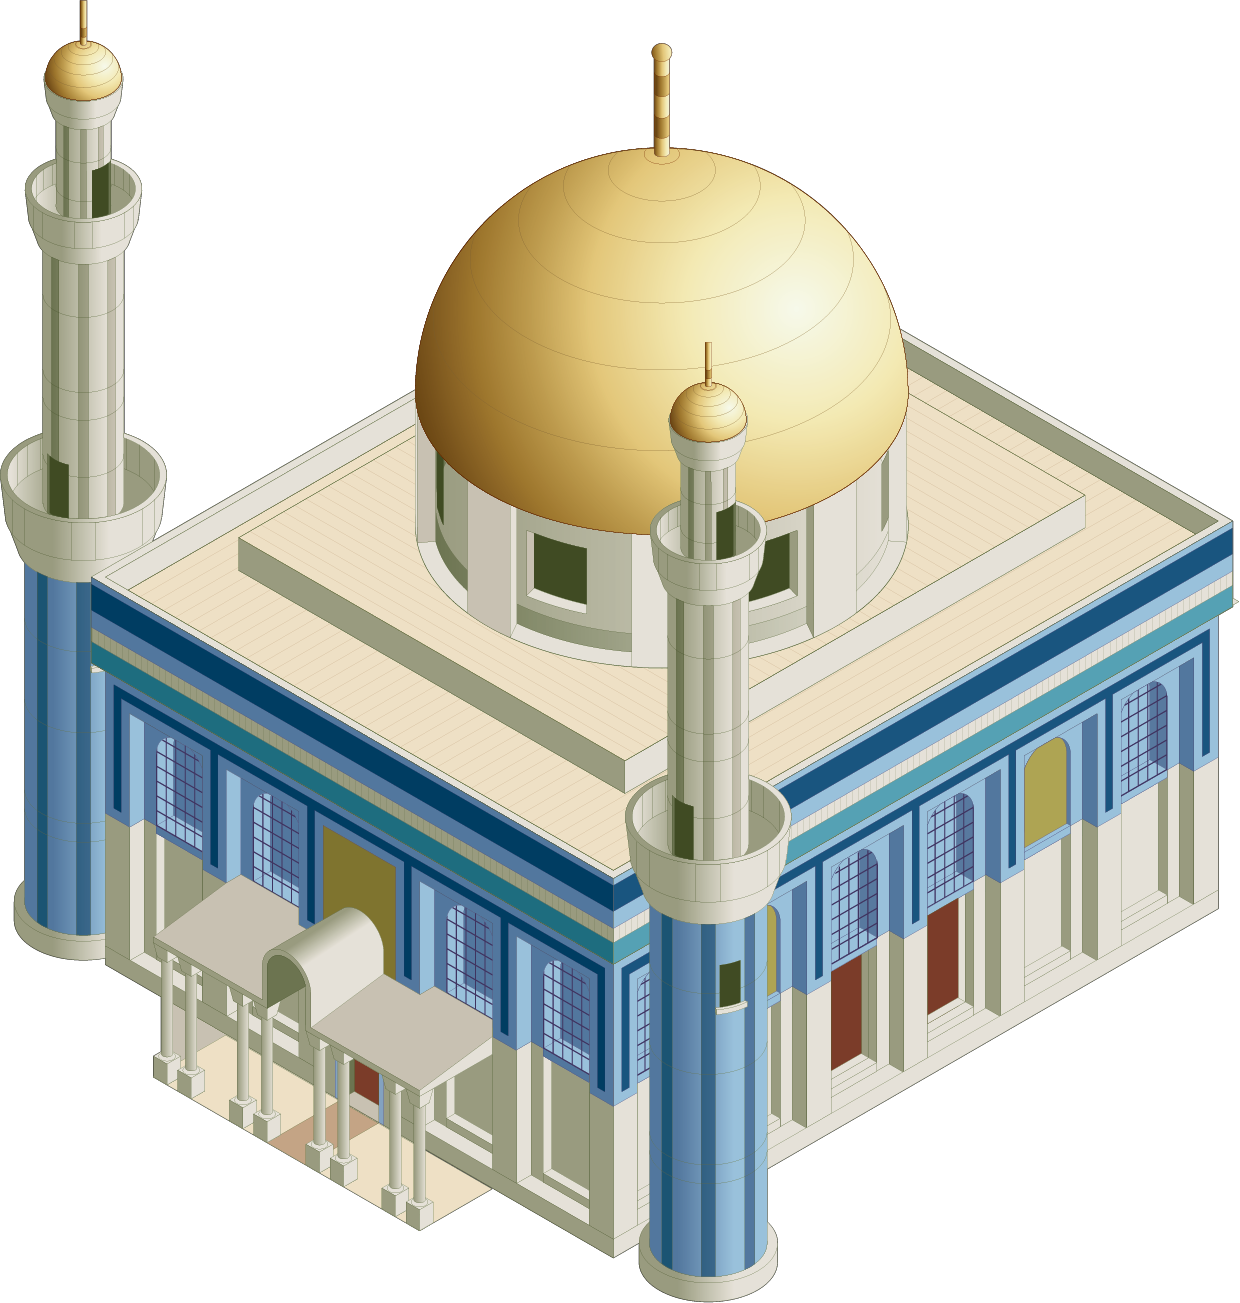 Mosque clipart mosque dome, Mosque mosque dome Transparent FREE for